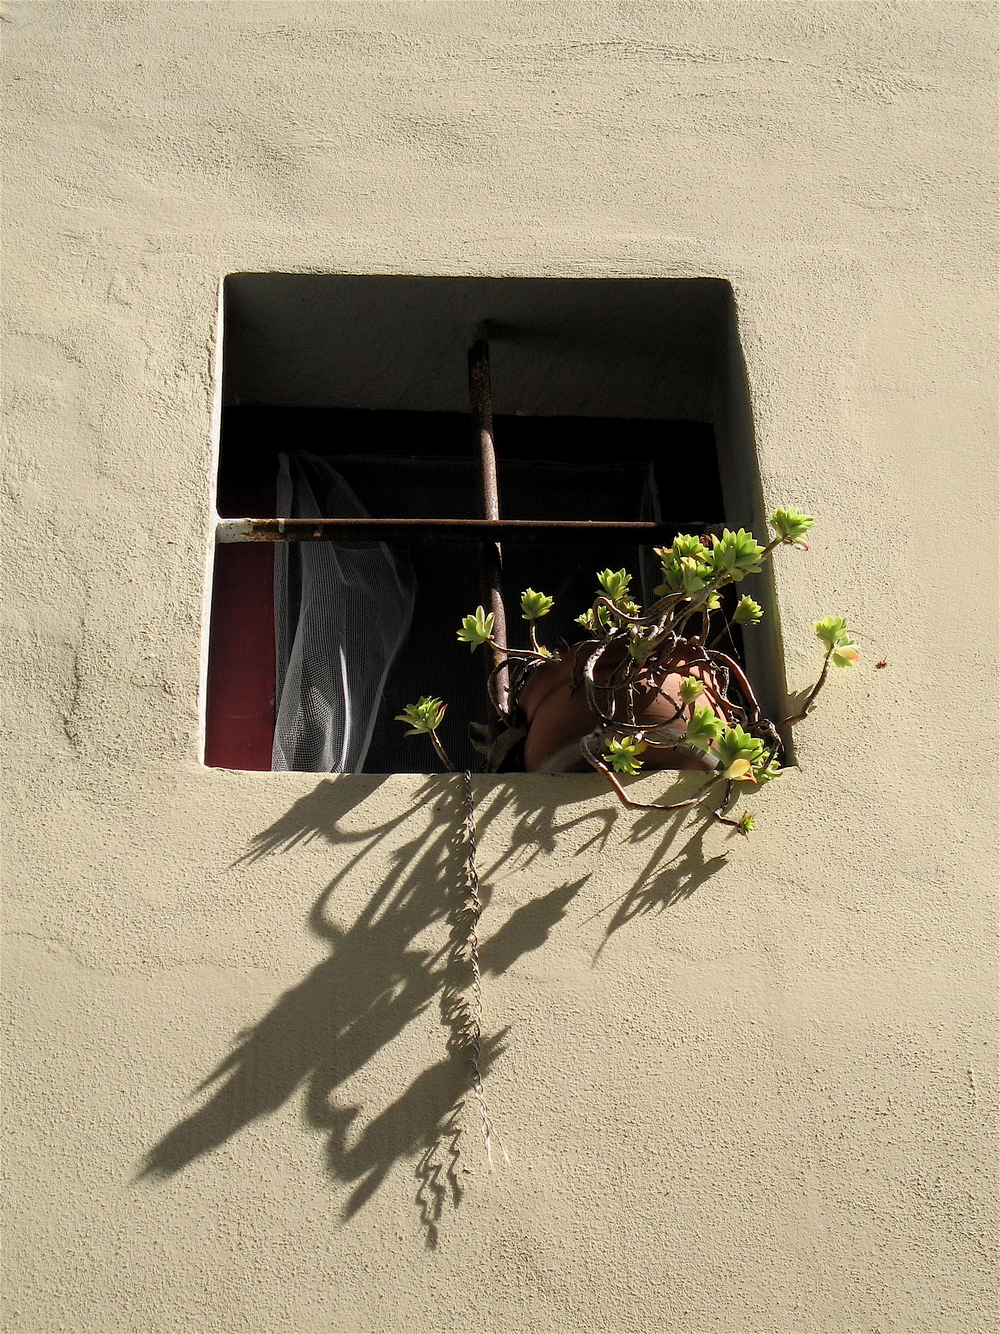 Plant in a window